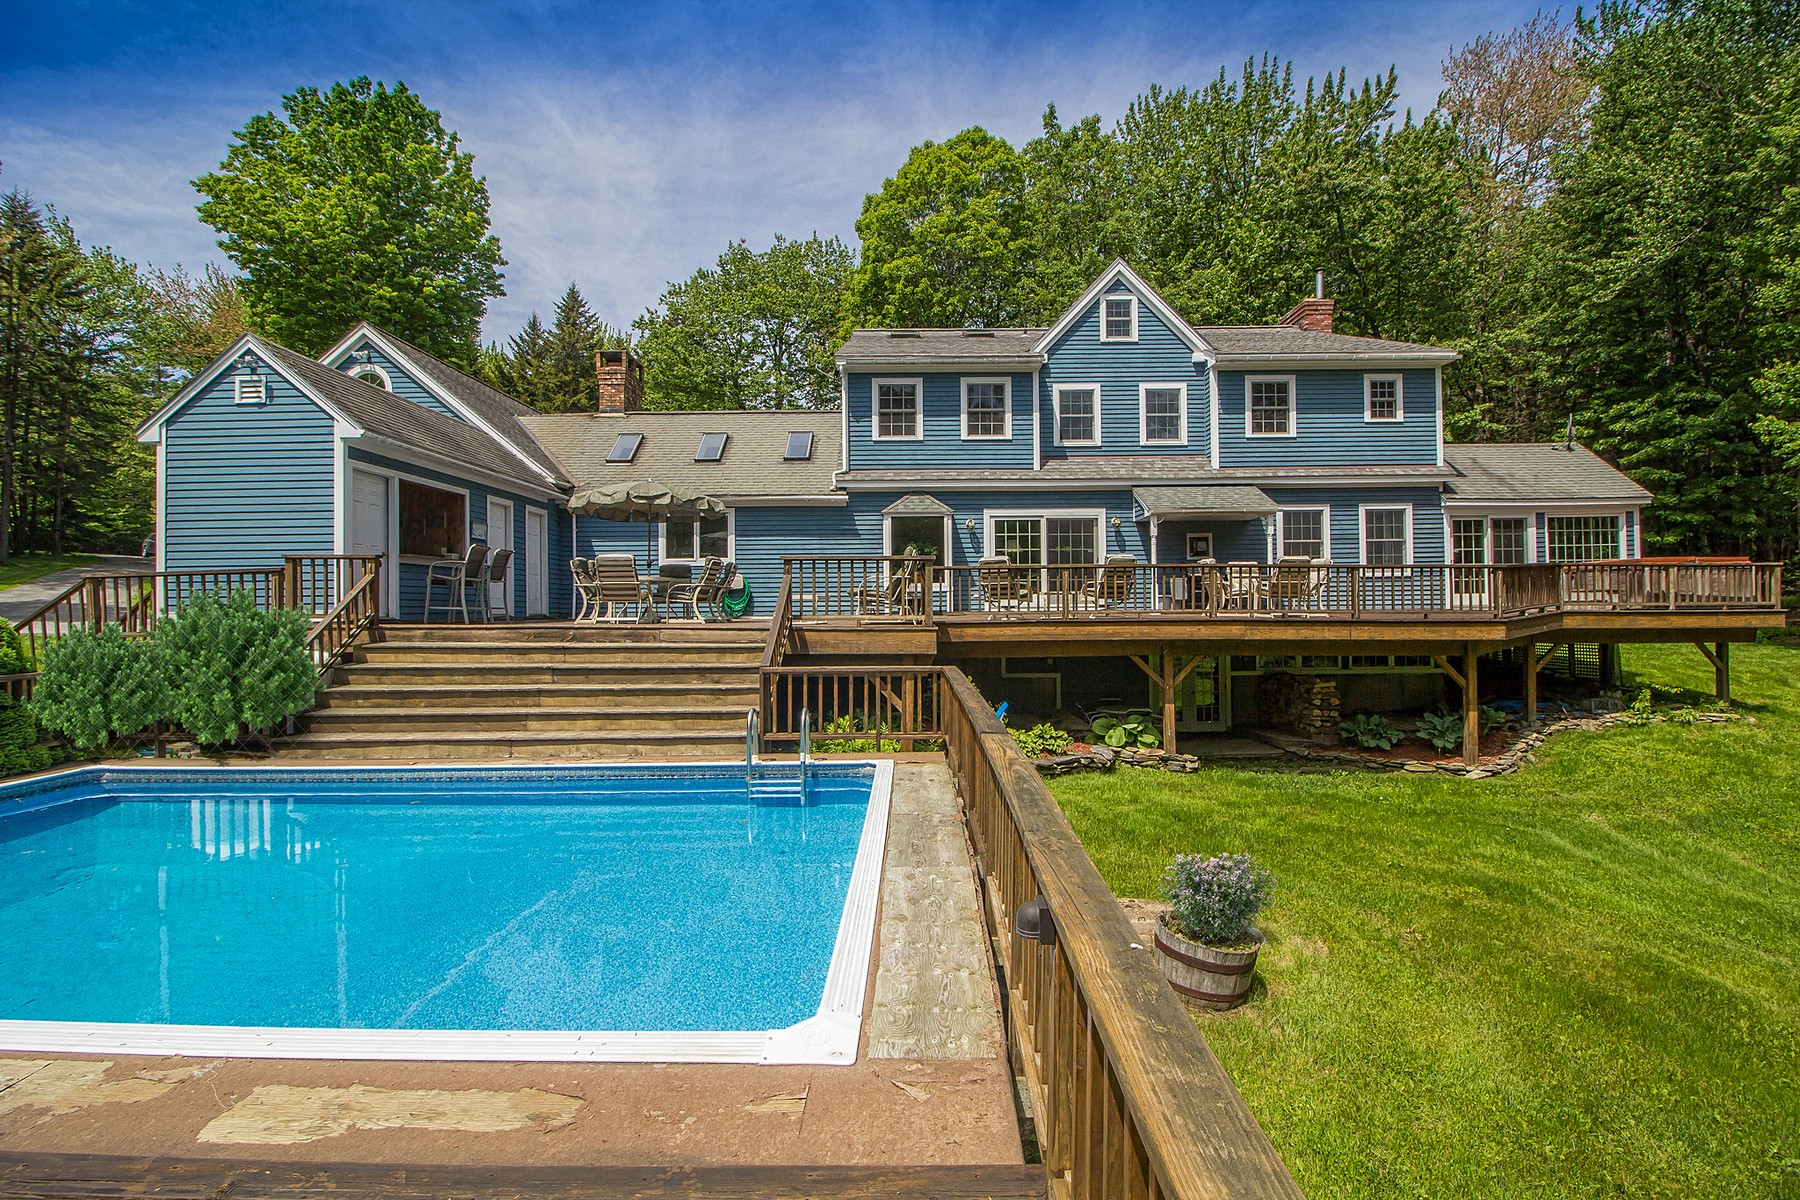 Single Family Homes for Sale at Attractive Country Estate 678 Stone House Rd Whitingham, Vermont 05342 United States